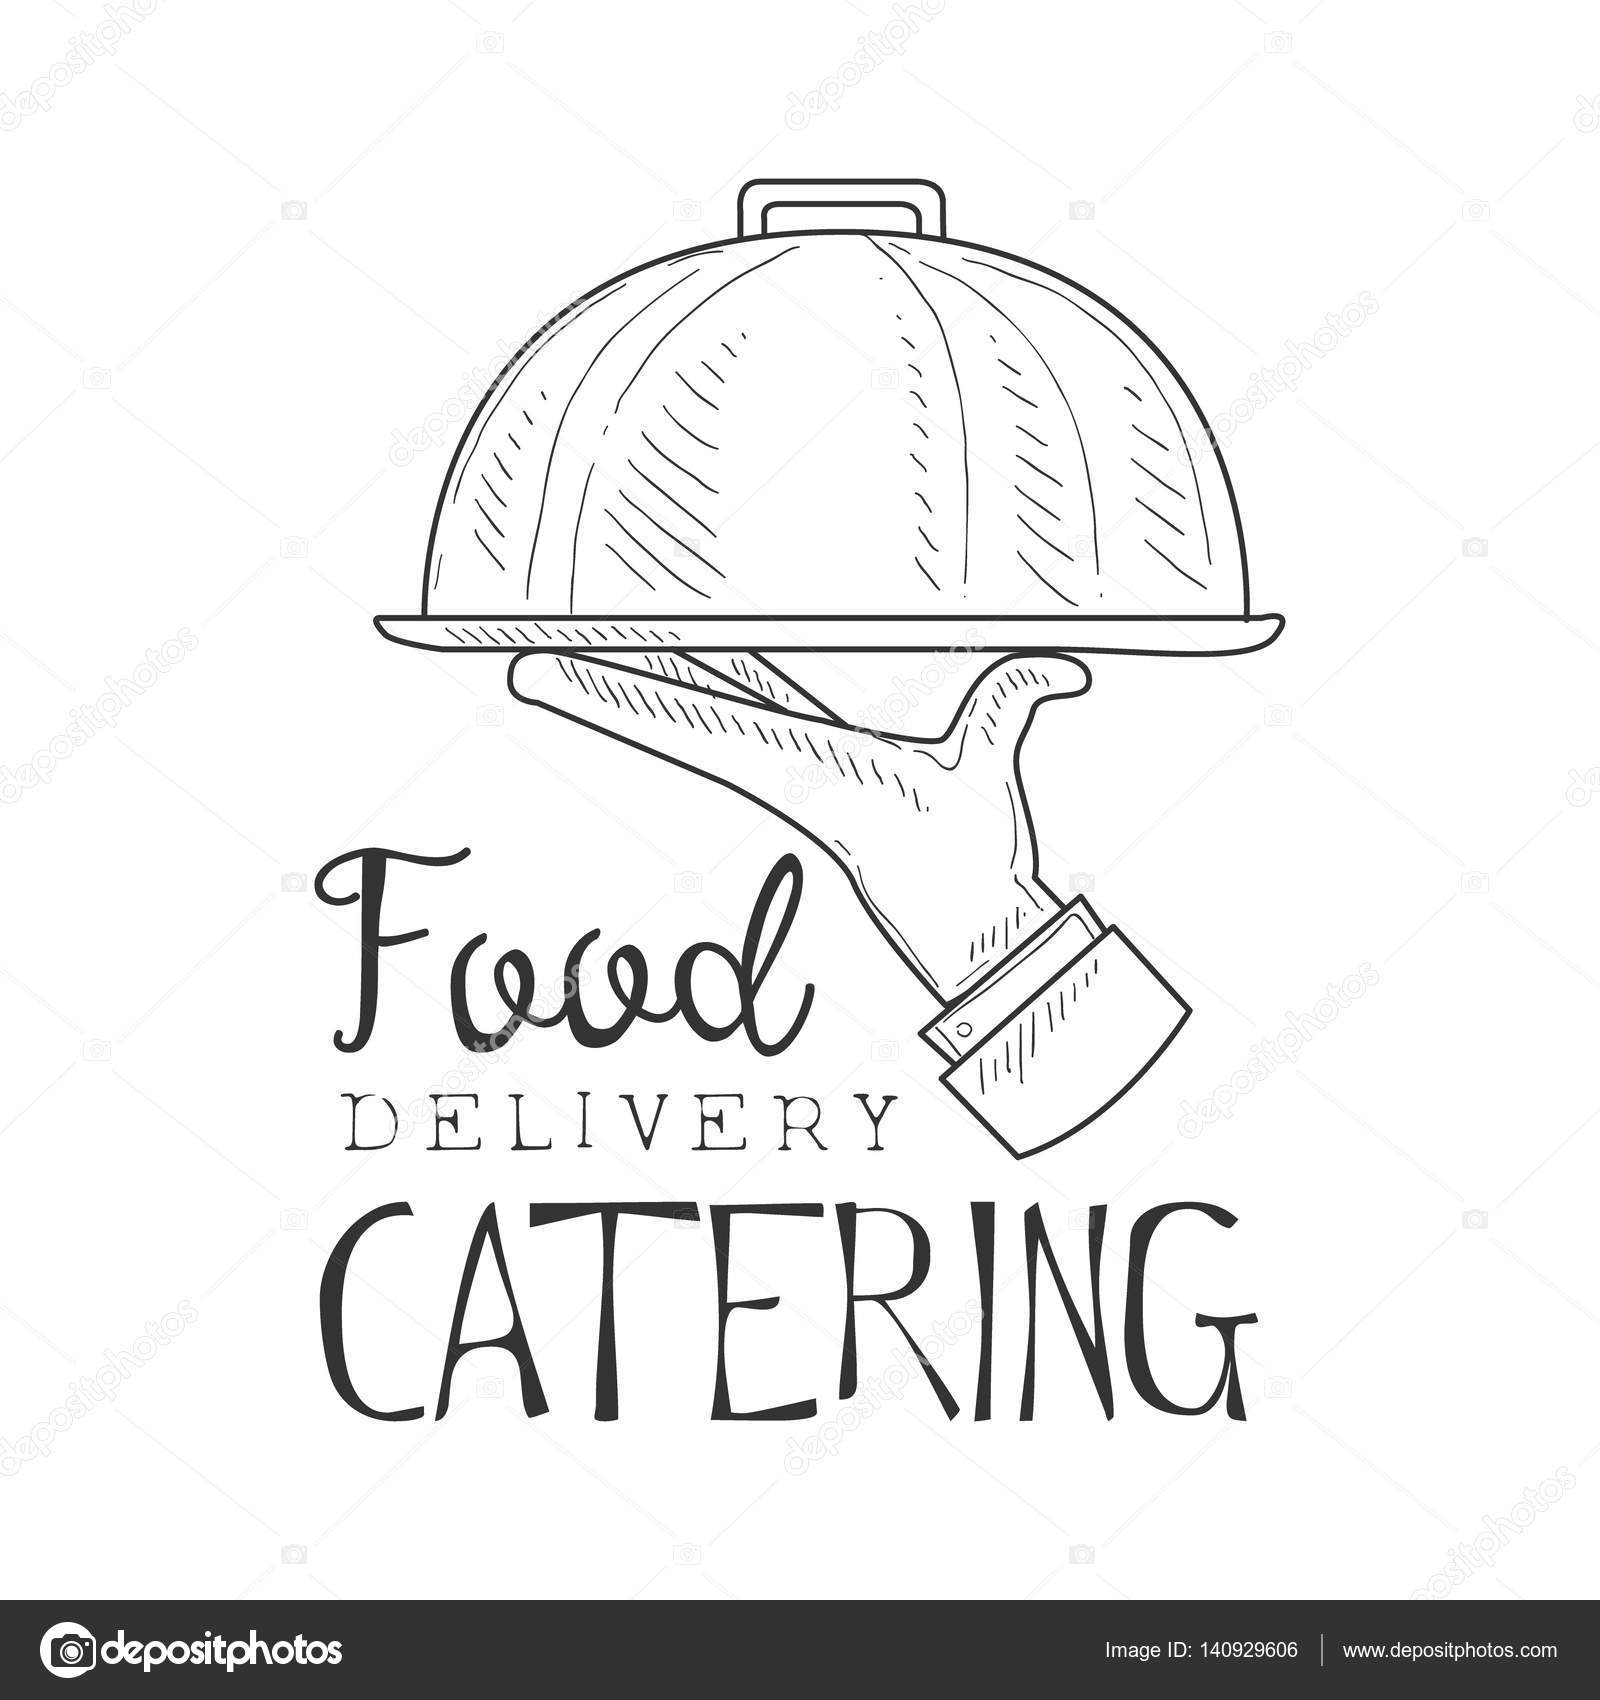 Best catering food delivery service hand drawn black and for Best catering